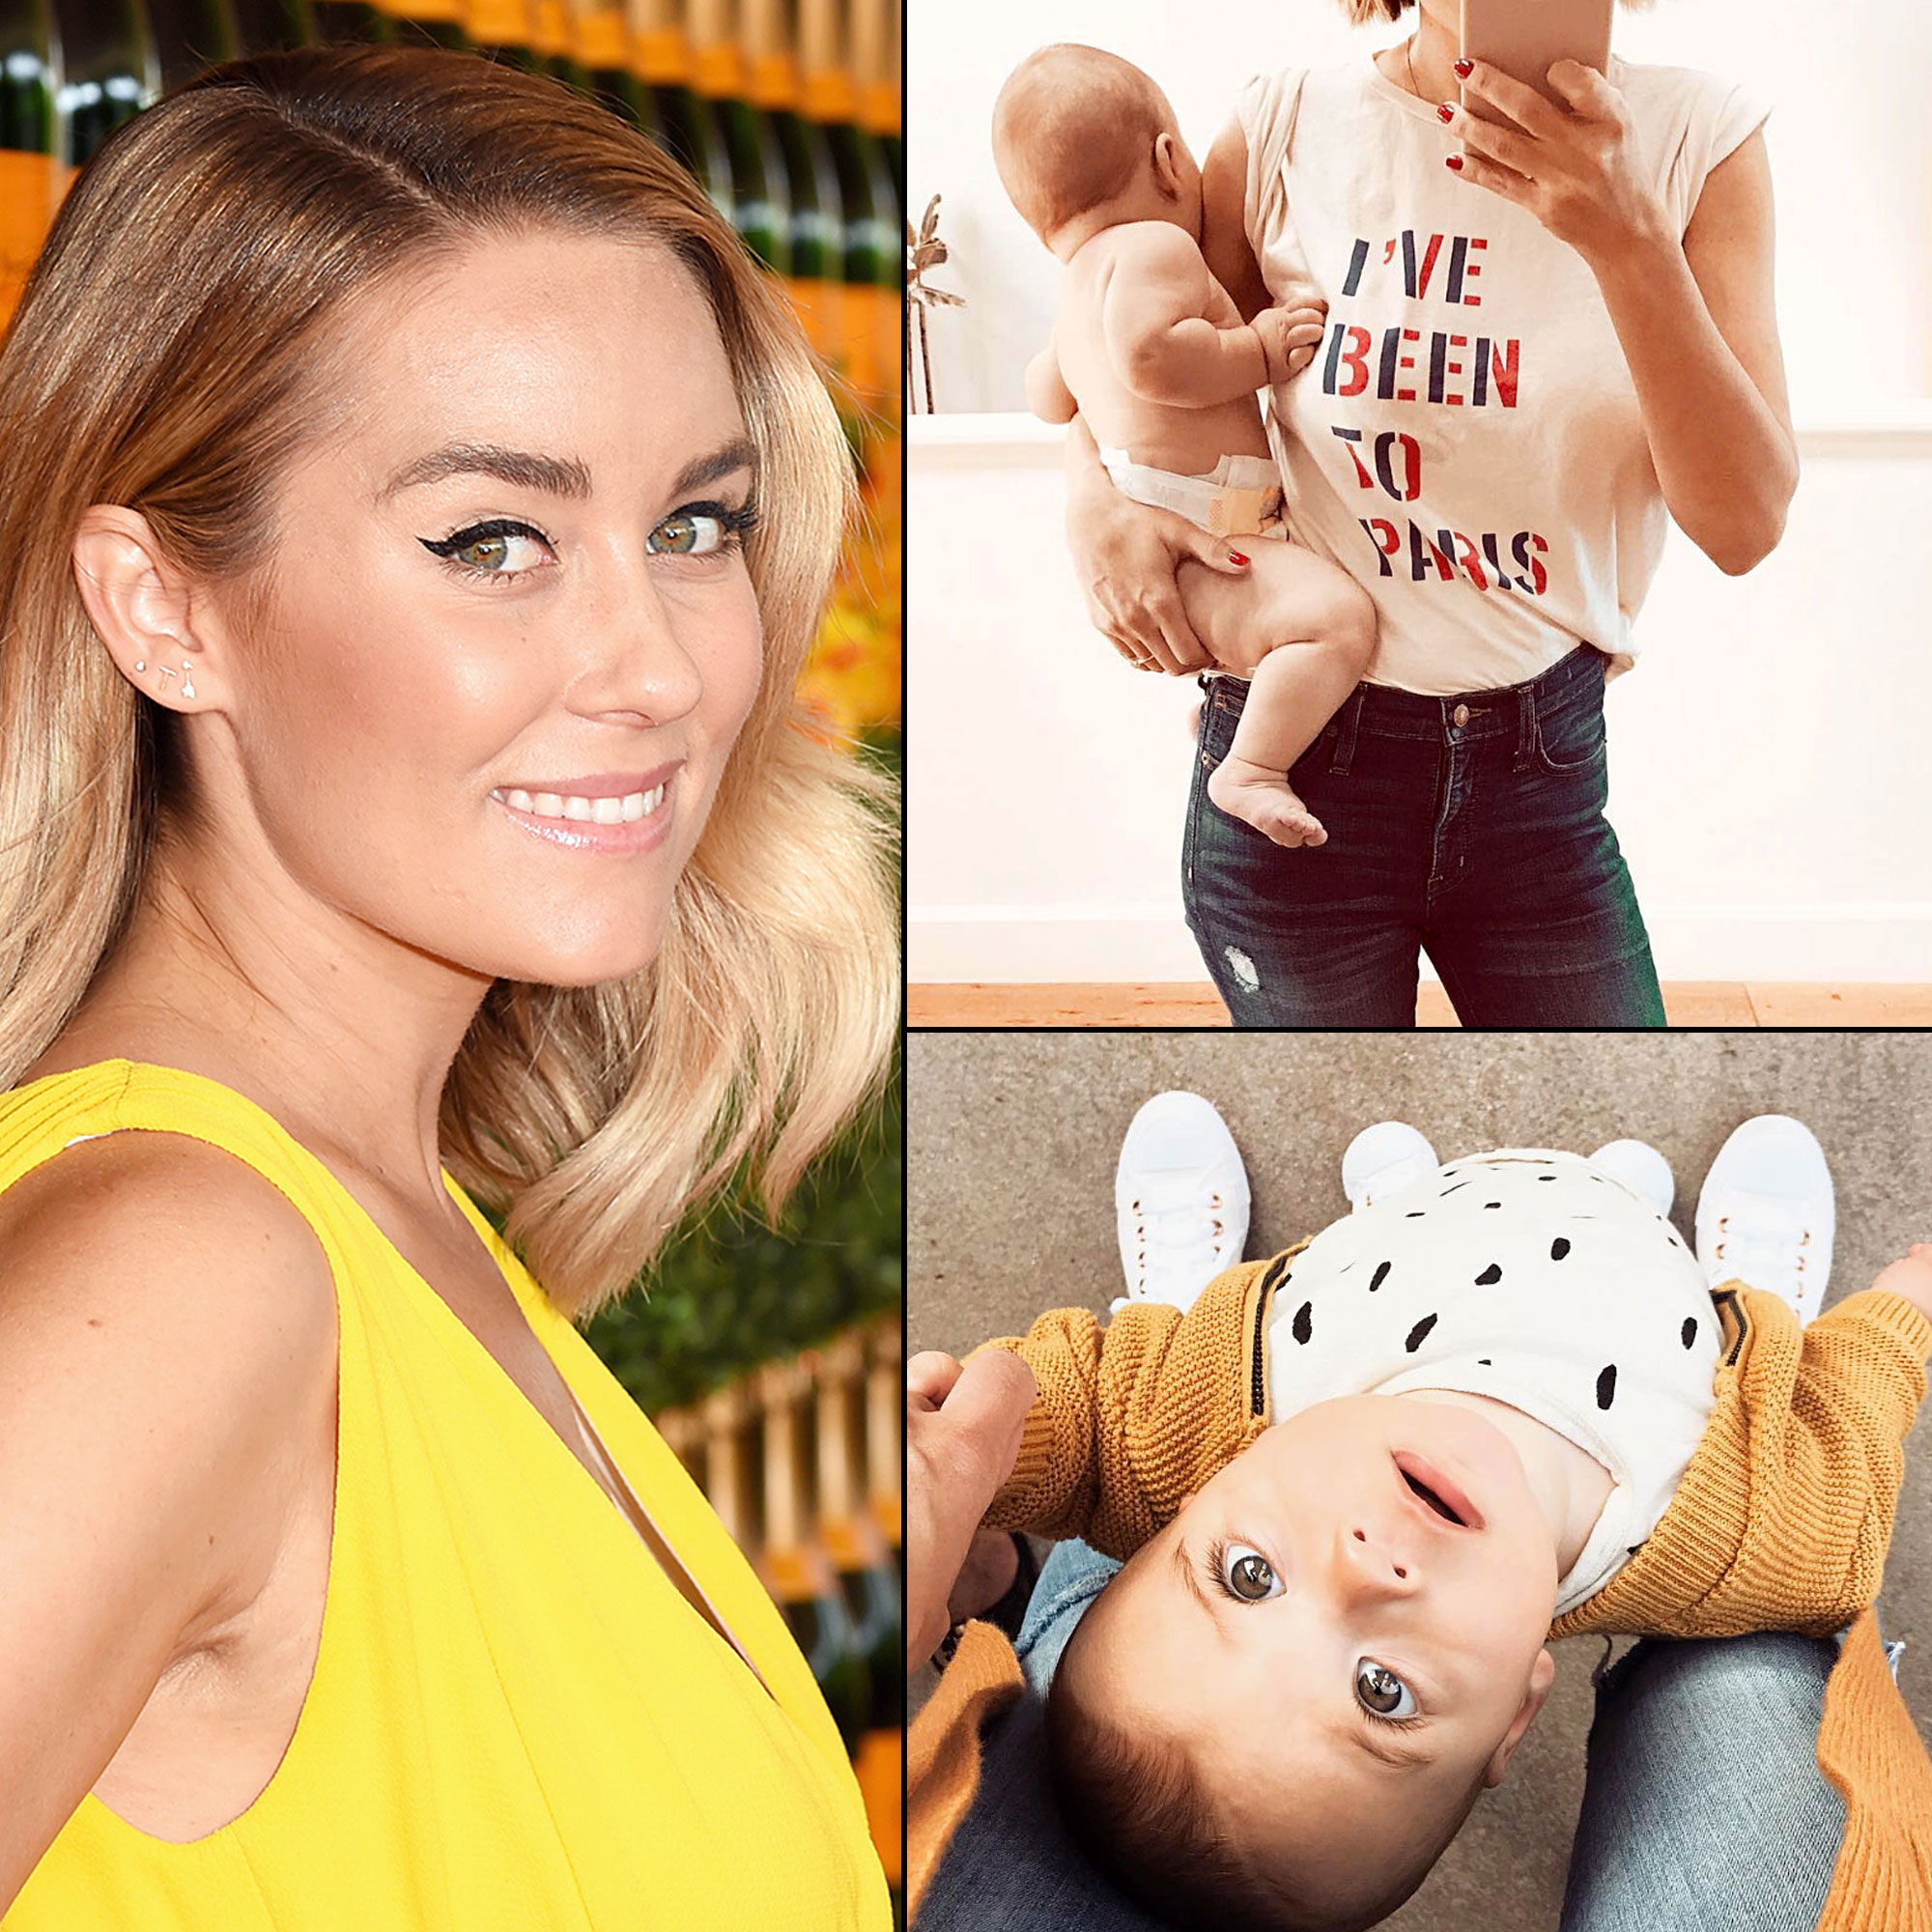 Lauren Conrad's Best Quotes About Motherhood - What motherhood means to her. Lauren Conrad started growing her family in 2017, and the Hills alum has been sharing her thoughts on parenting ever since.